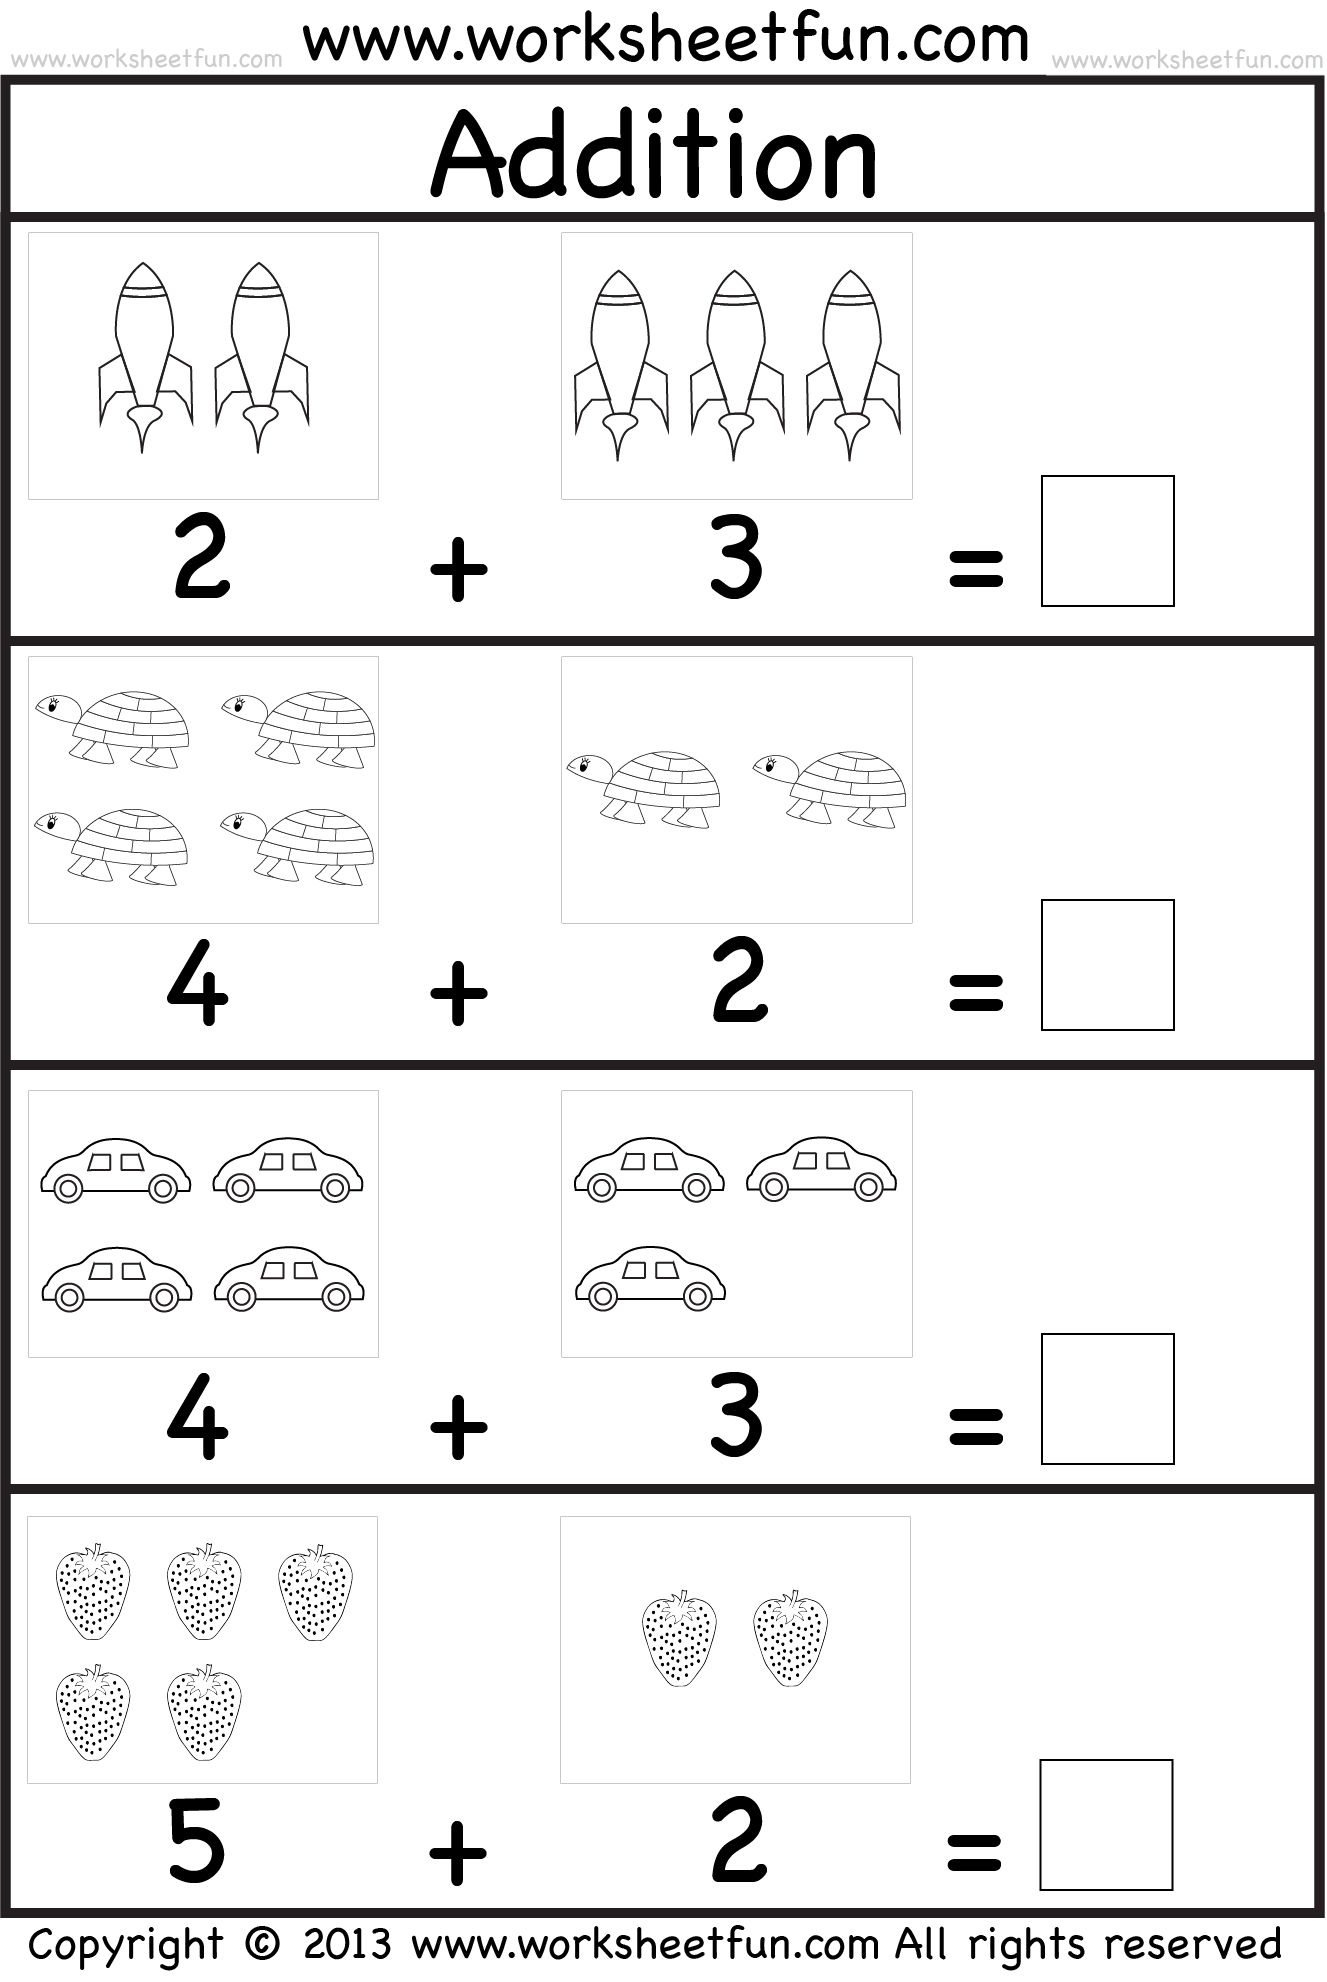 Addition Worksheet | Kukuly | Kindergarten Math Worksheets, Free